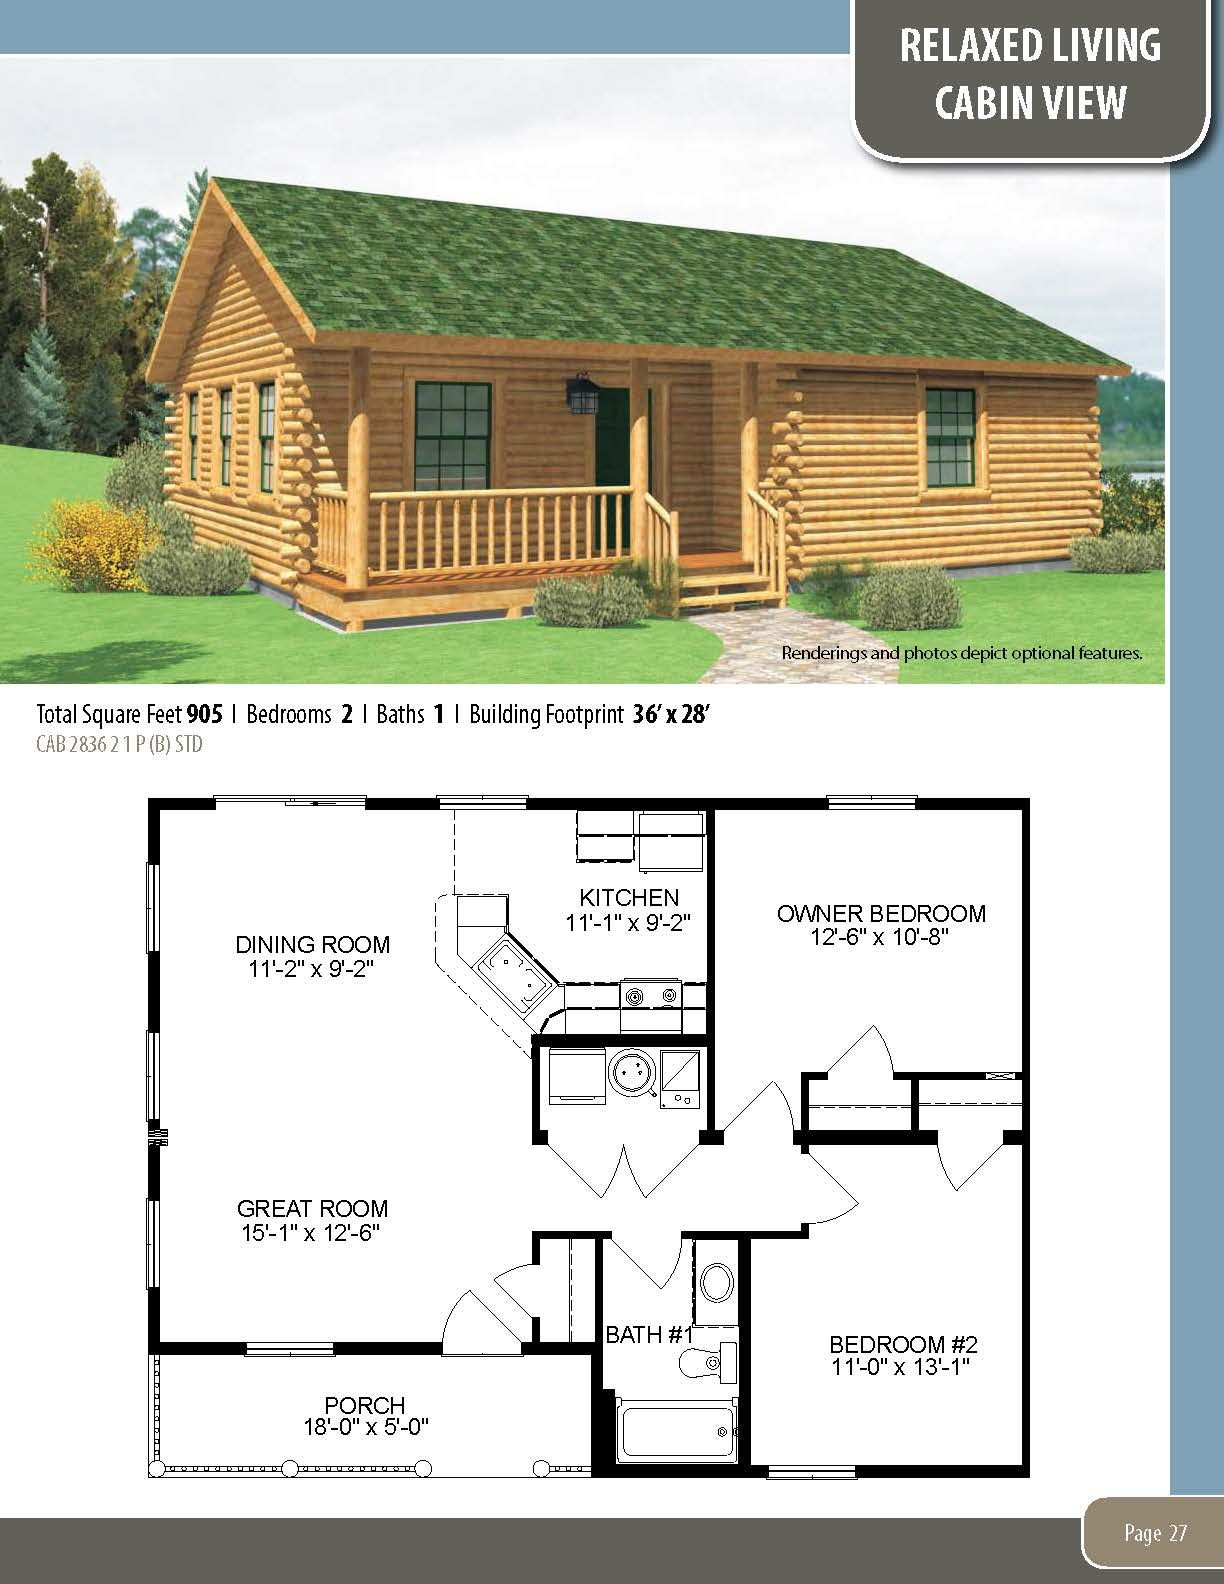 The Cabin View Visit Our Website To Learn More About Our Custom Homes Or To Download A Free Copy Of Any Building A House Cabin House Plans Best House Plans